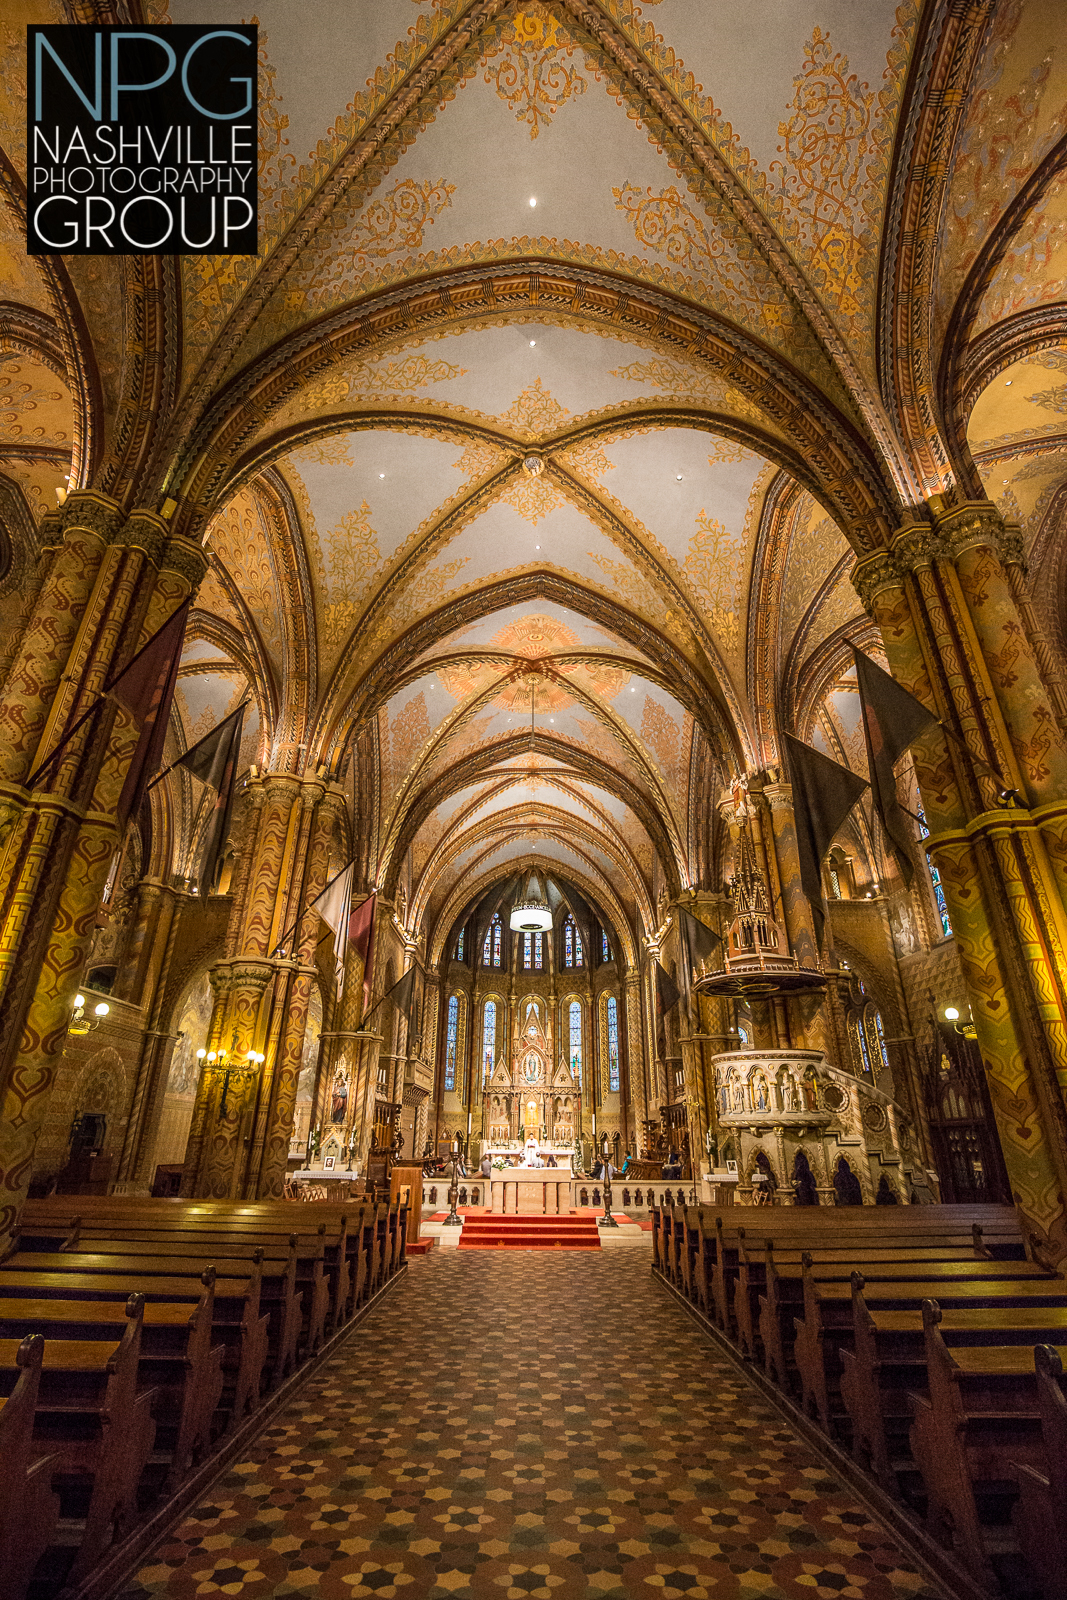 St. Matthais Cathedral in Budapest, Hungary - Nashville Photography Group